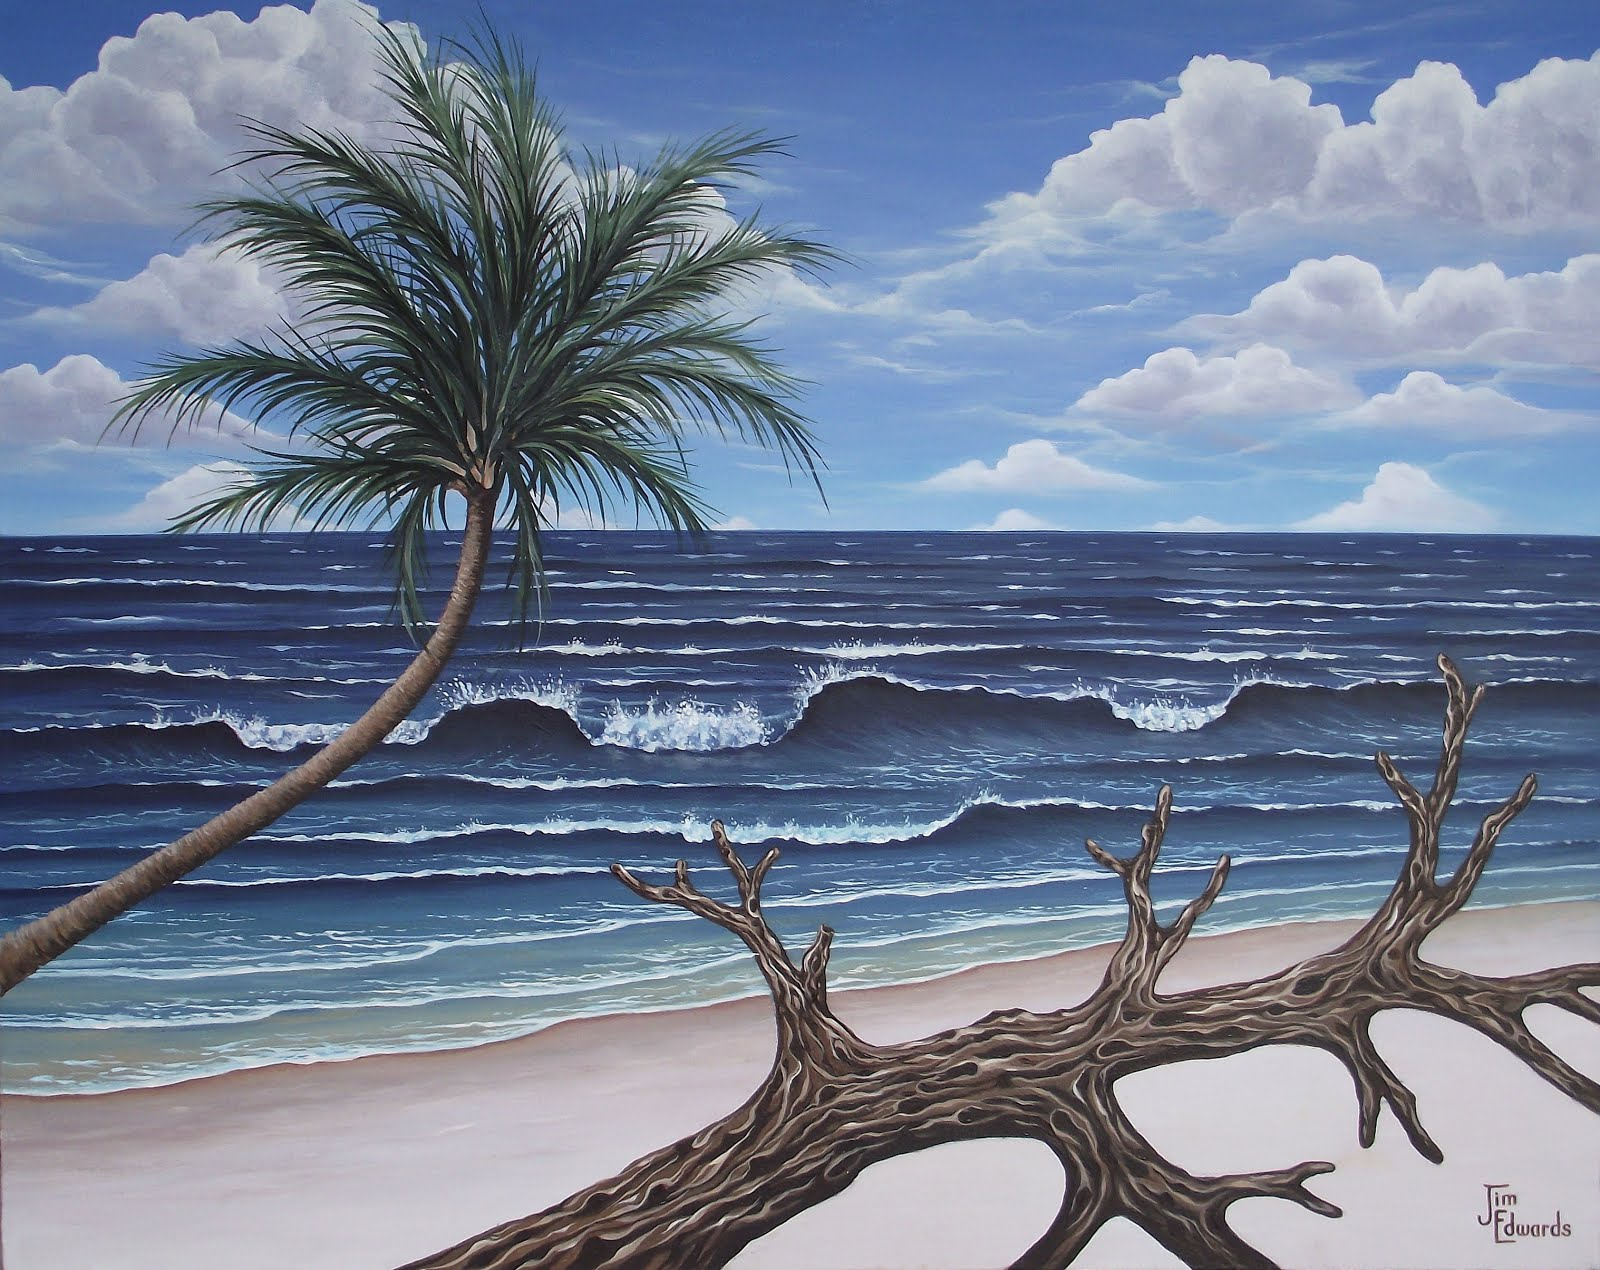 Palm and Driftwood 24 x 30